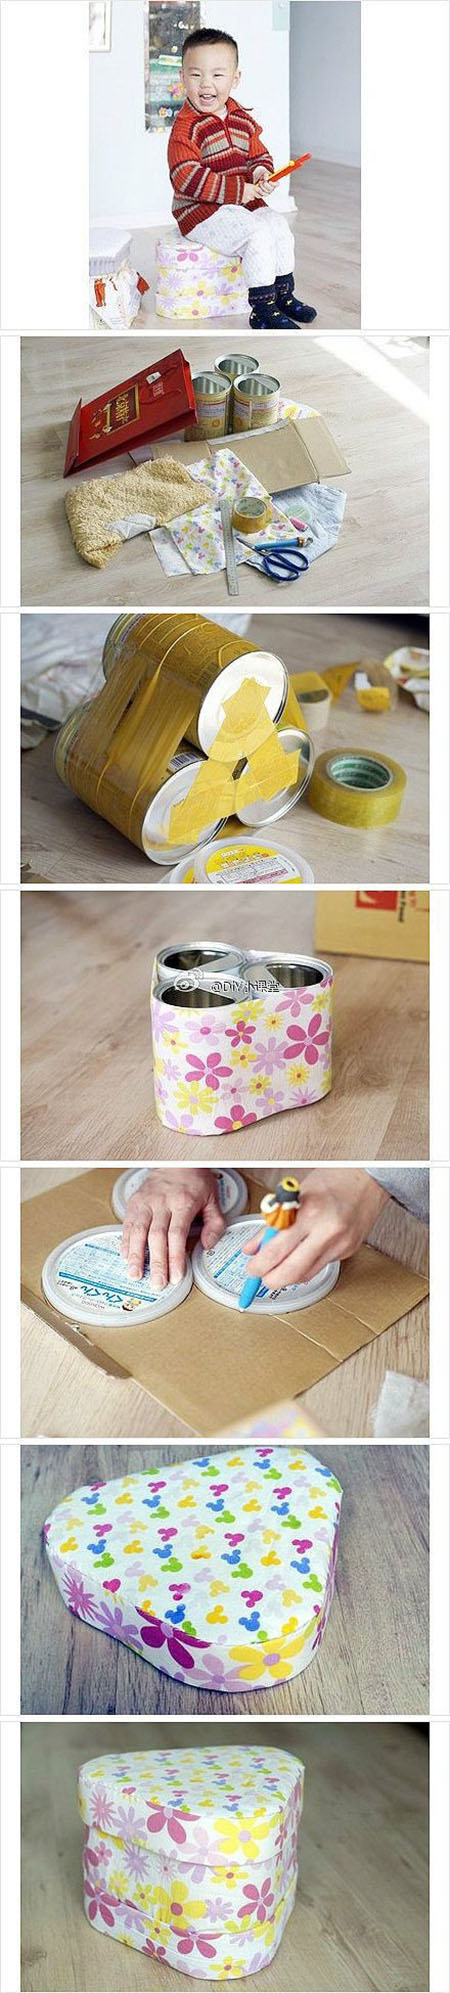 13  Cute recycling idea for tin cans.59f5bbd